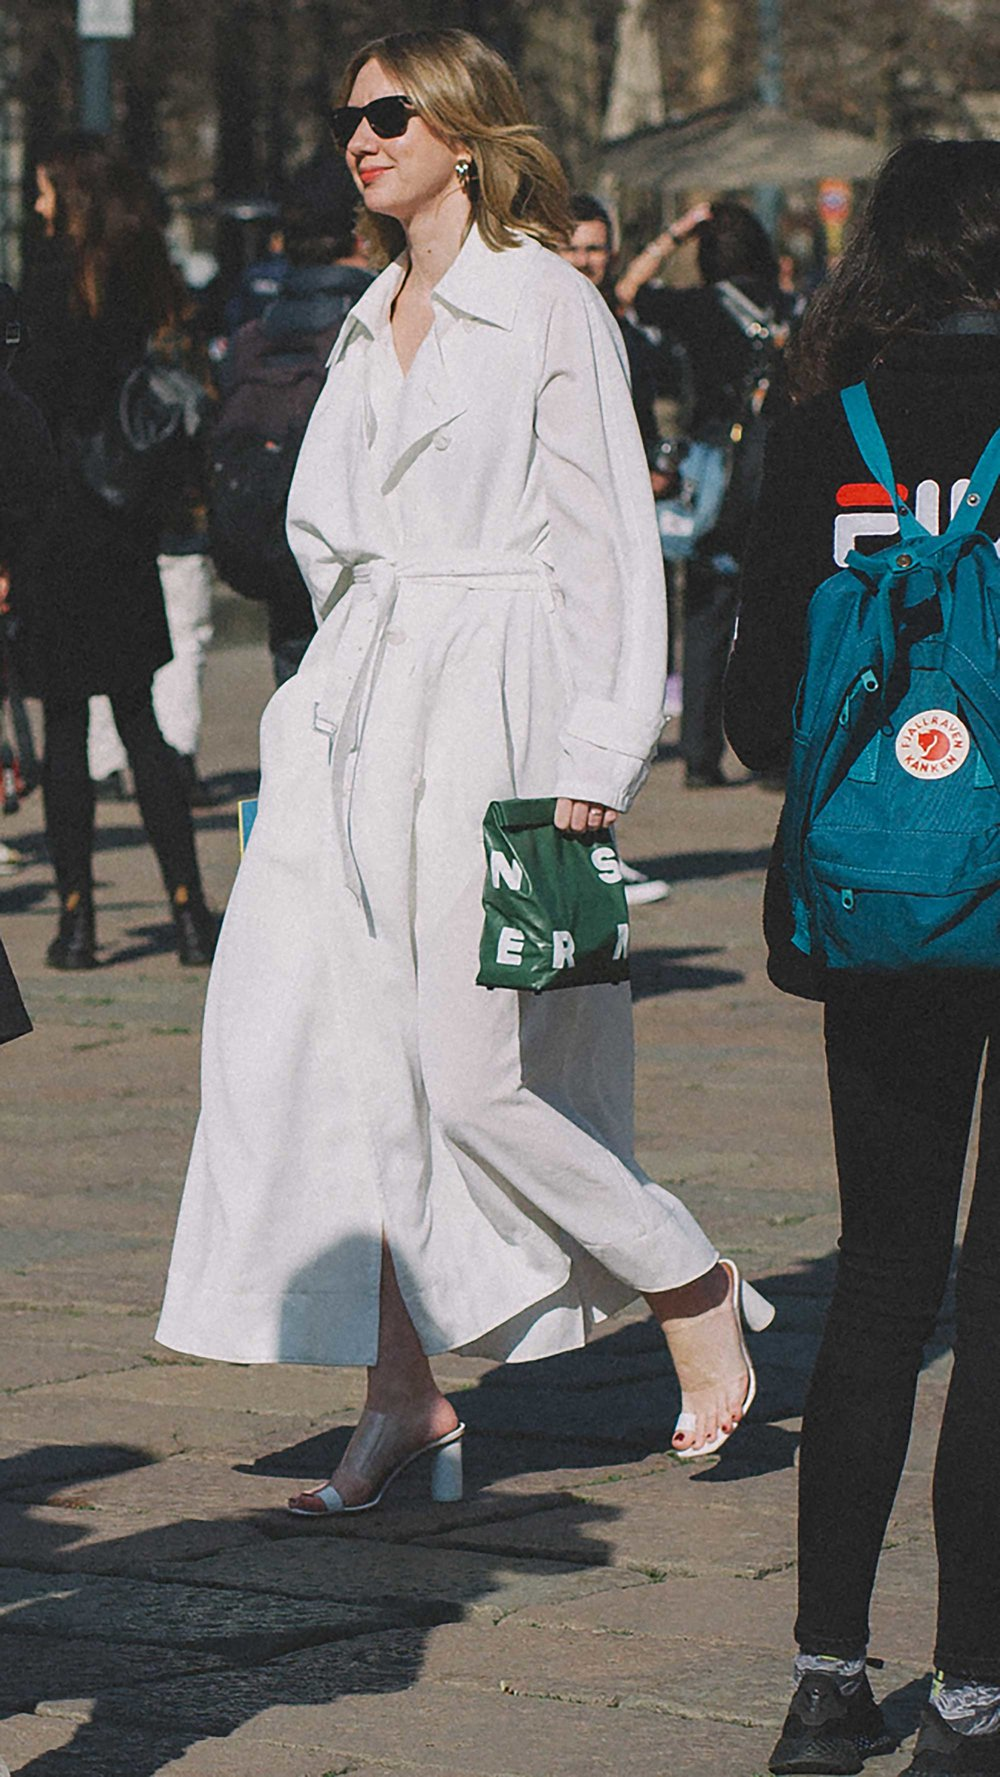 est outfits of Milan Fashion Week street style day two MFW FW19 38.jpg